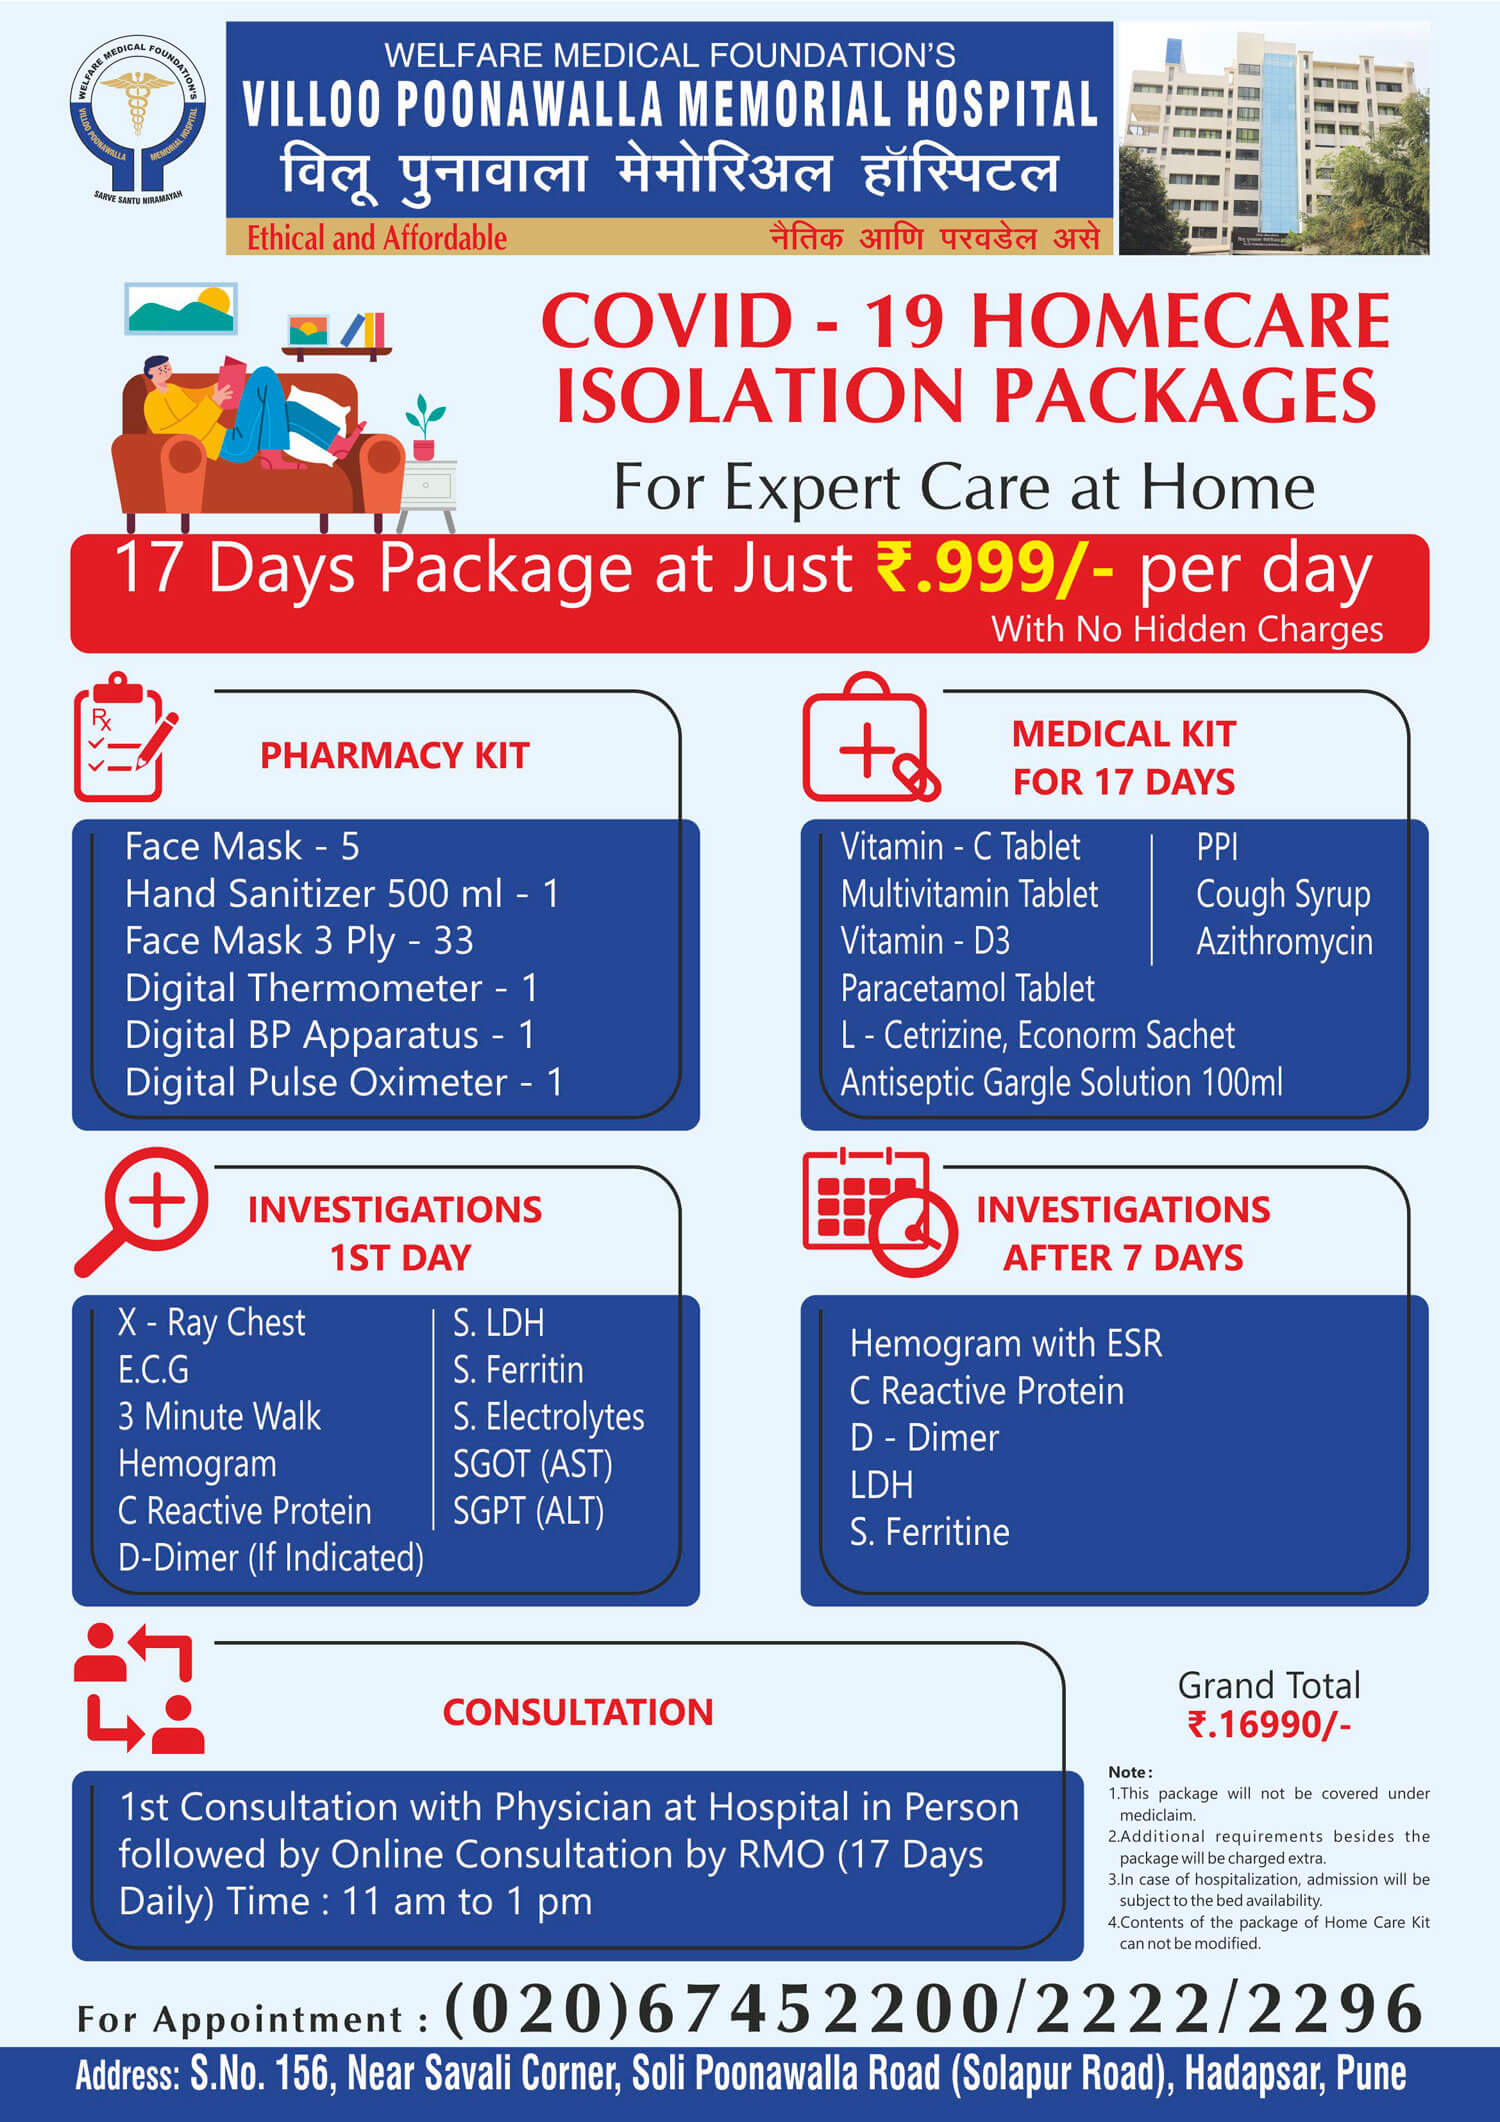 Covid - 19 Home Care Isolation Package